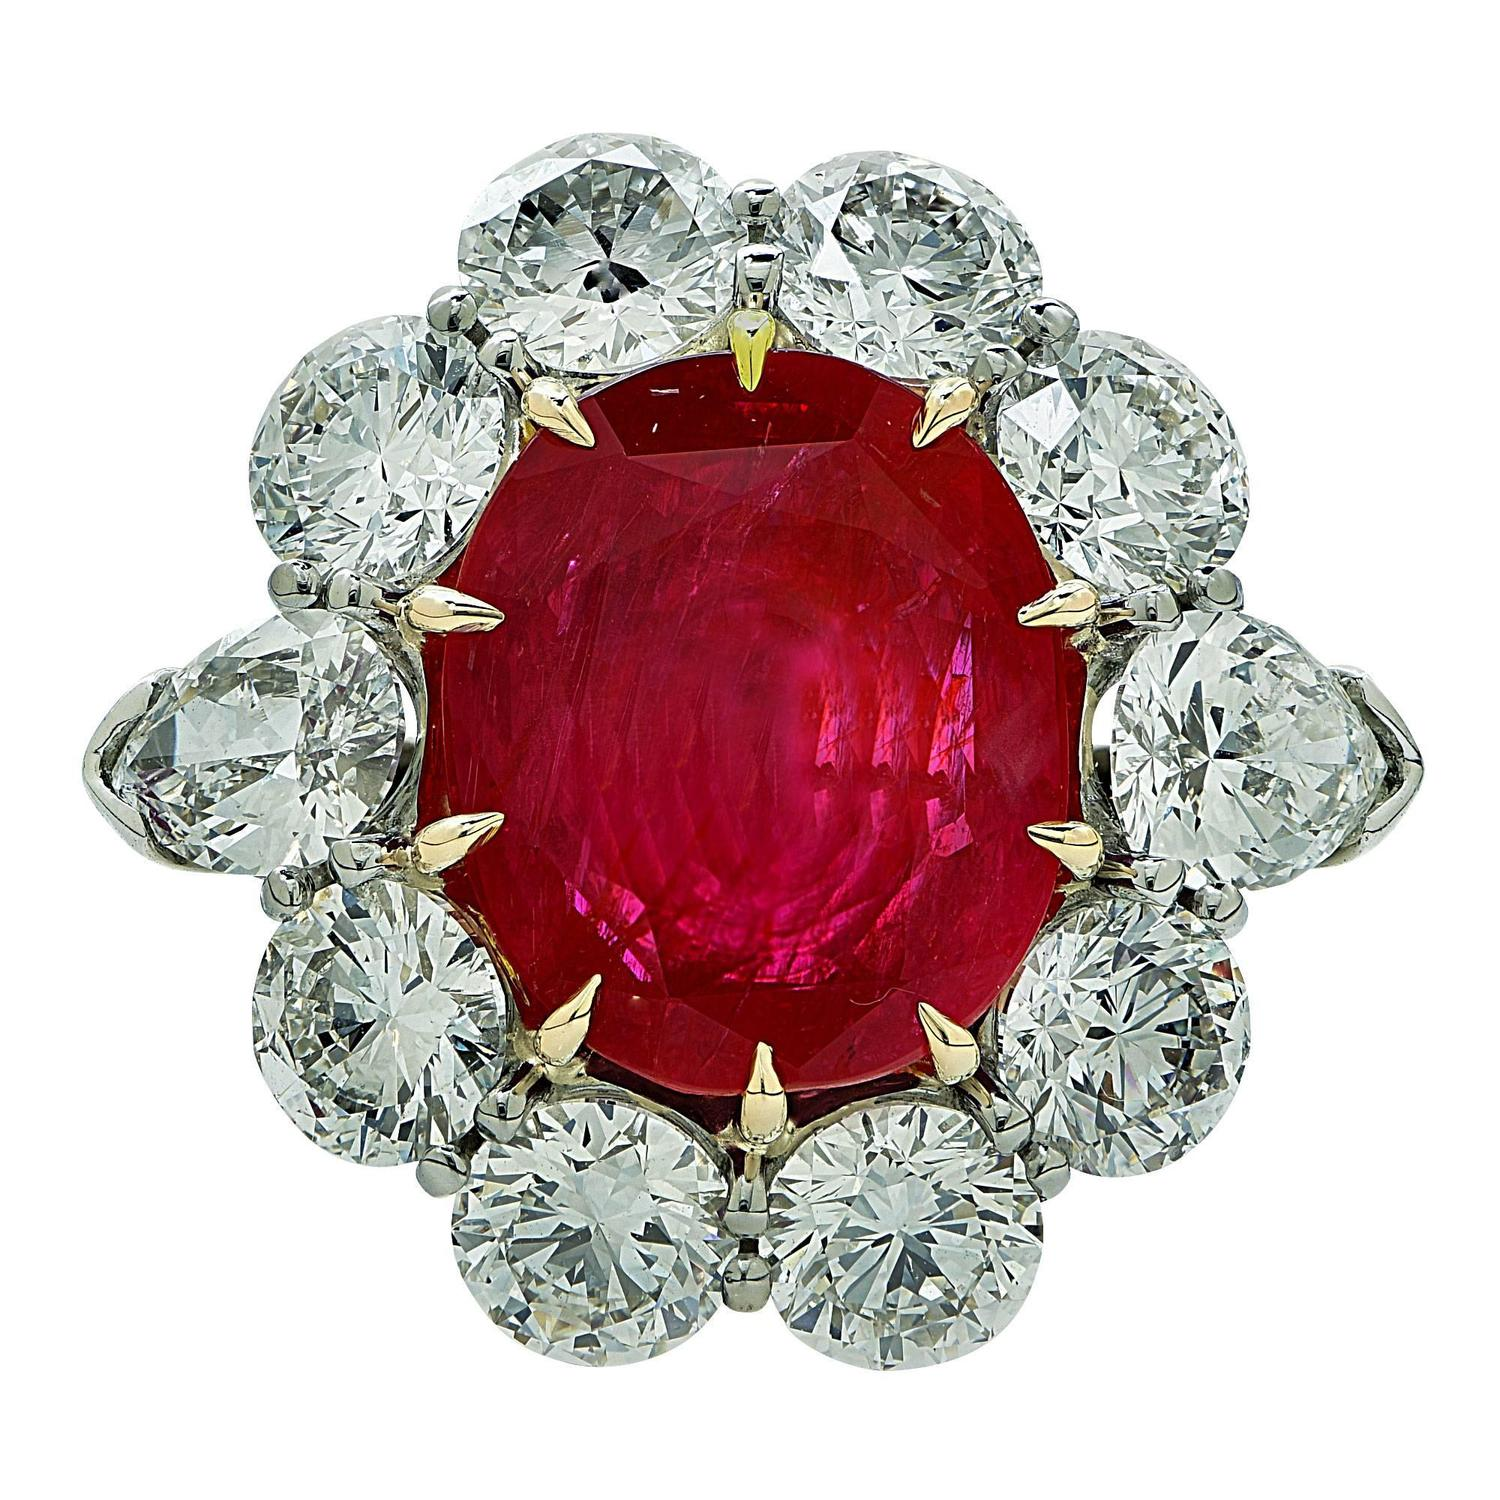 Custom Burma Ruby Ring: Aletto Brothers 8.66 Carats AGL No Heat Burma Ruby Diamond